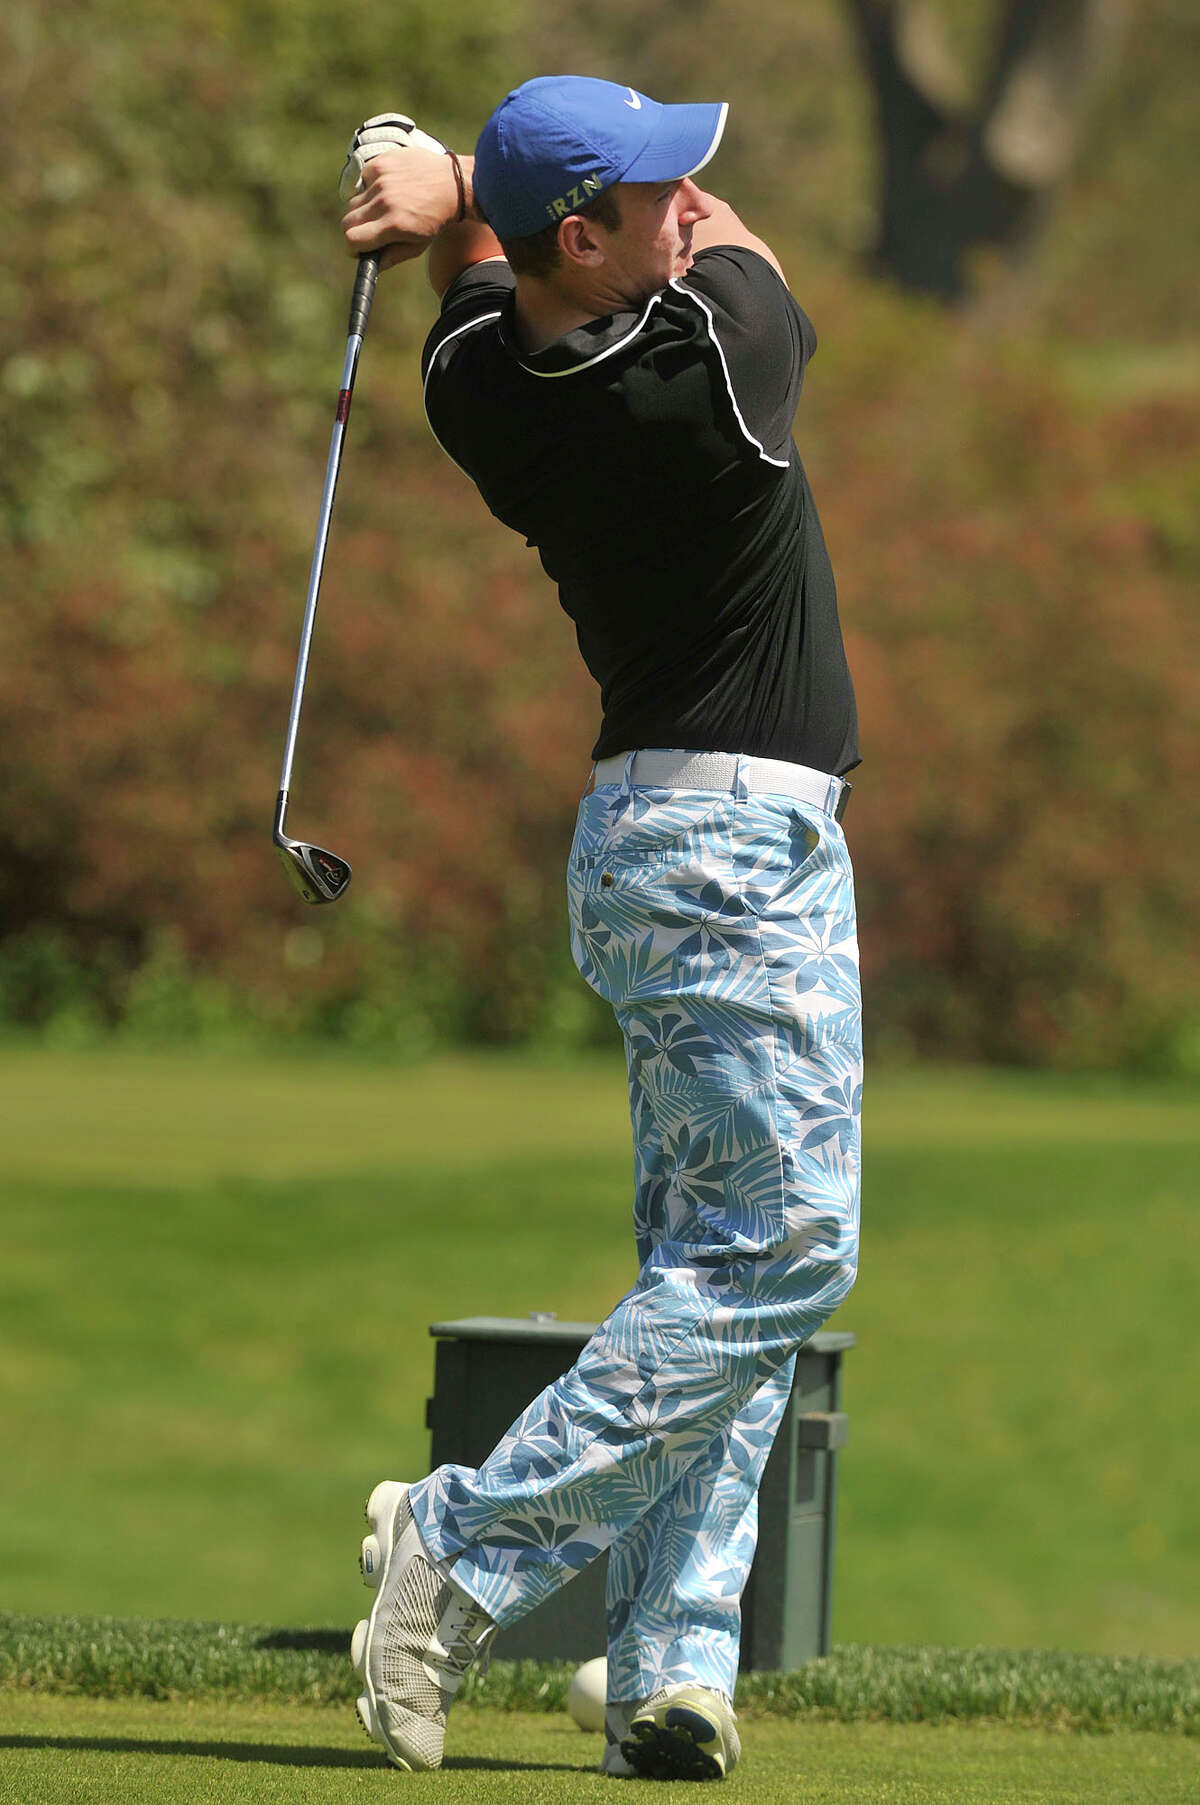 Westhill's Matt Kubli tees off during the City High School golf championship at Woodway Country Club in Darien, Conn., on Thursday, May7, 2015.